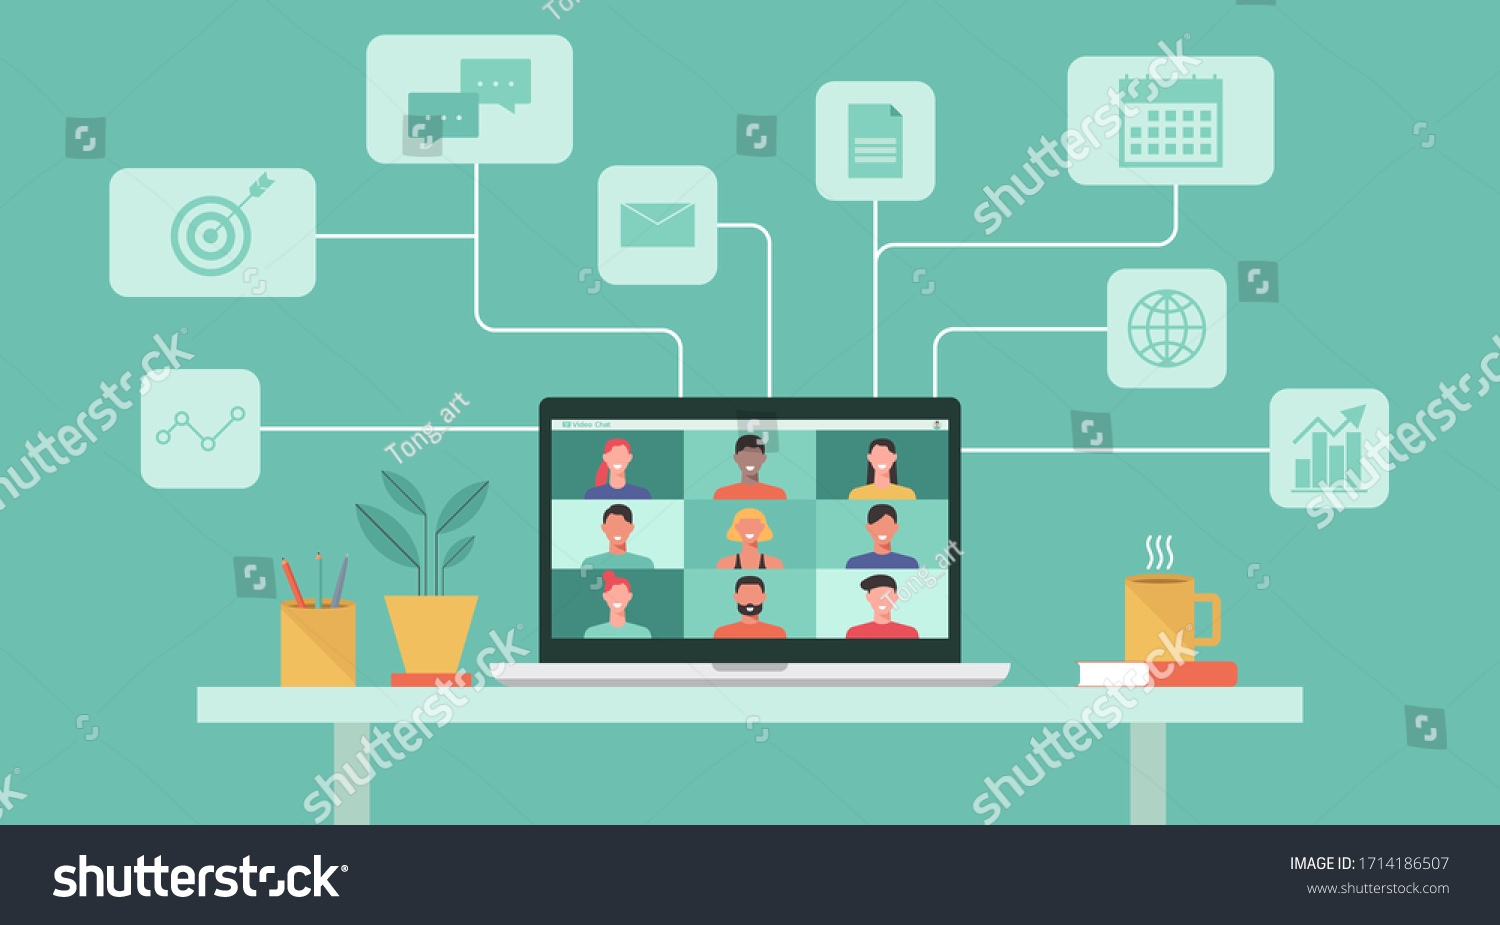 people connecting together, learning or meeting online with teleconference, video conference remote working concept, work from home and work from anywhere, flat vector illustration #1714186507